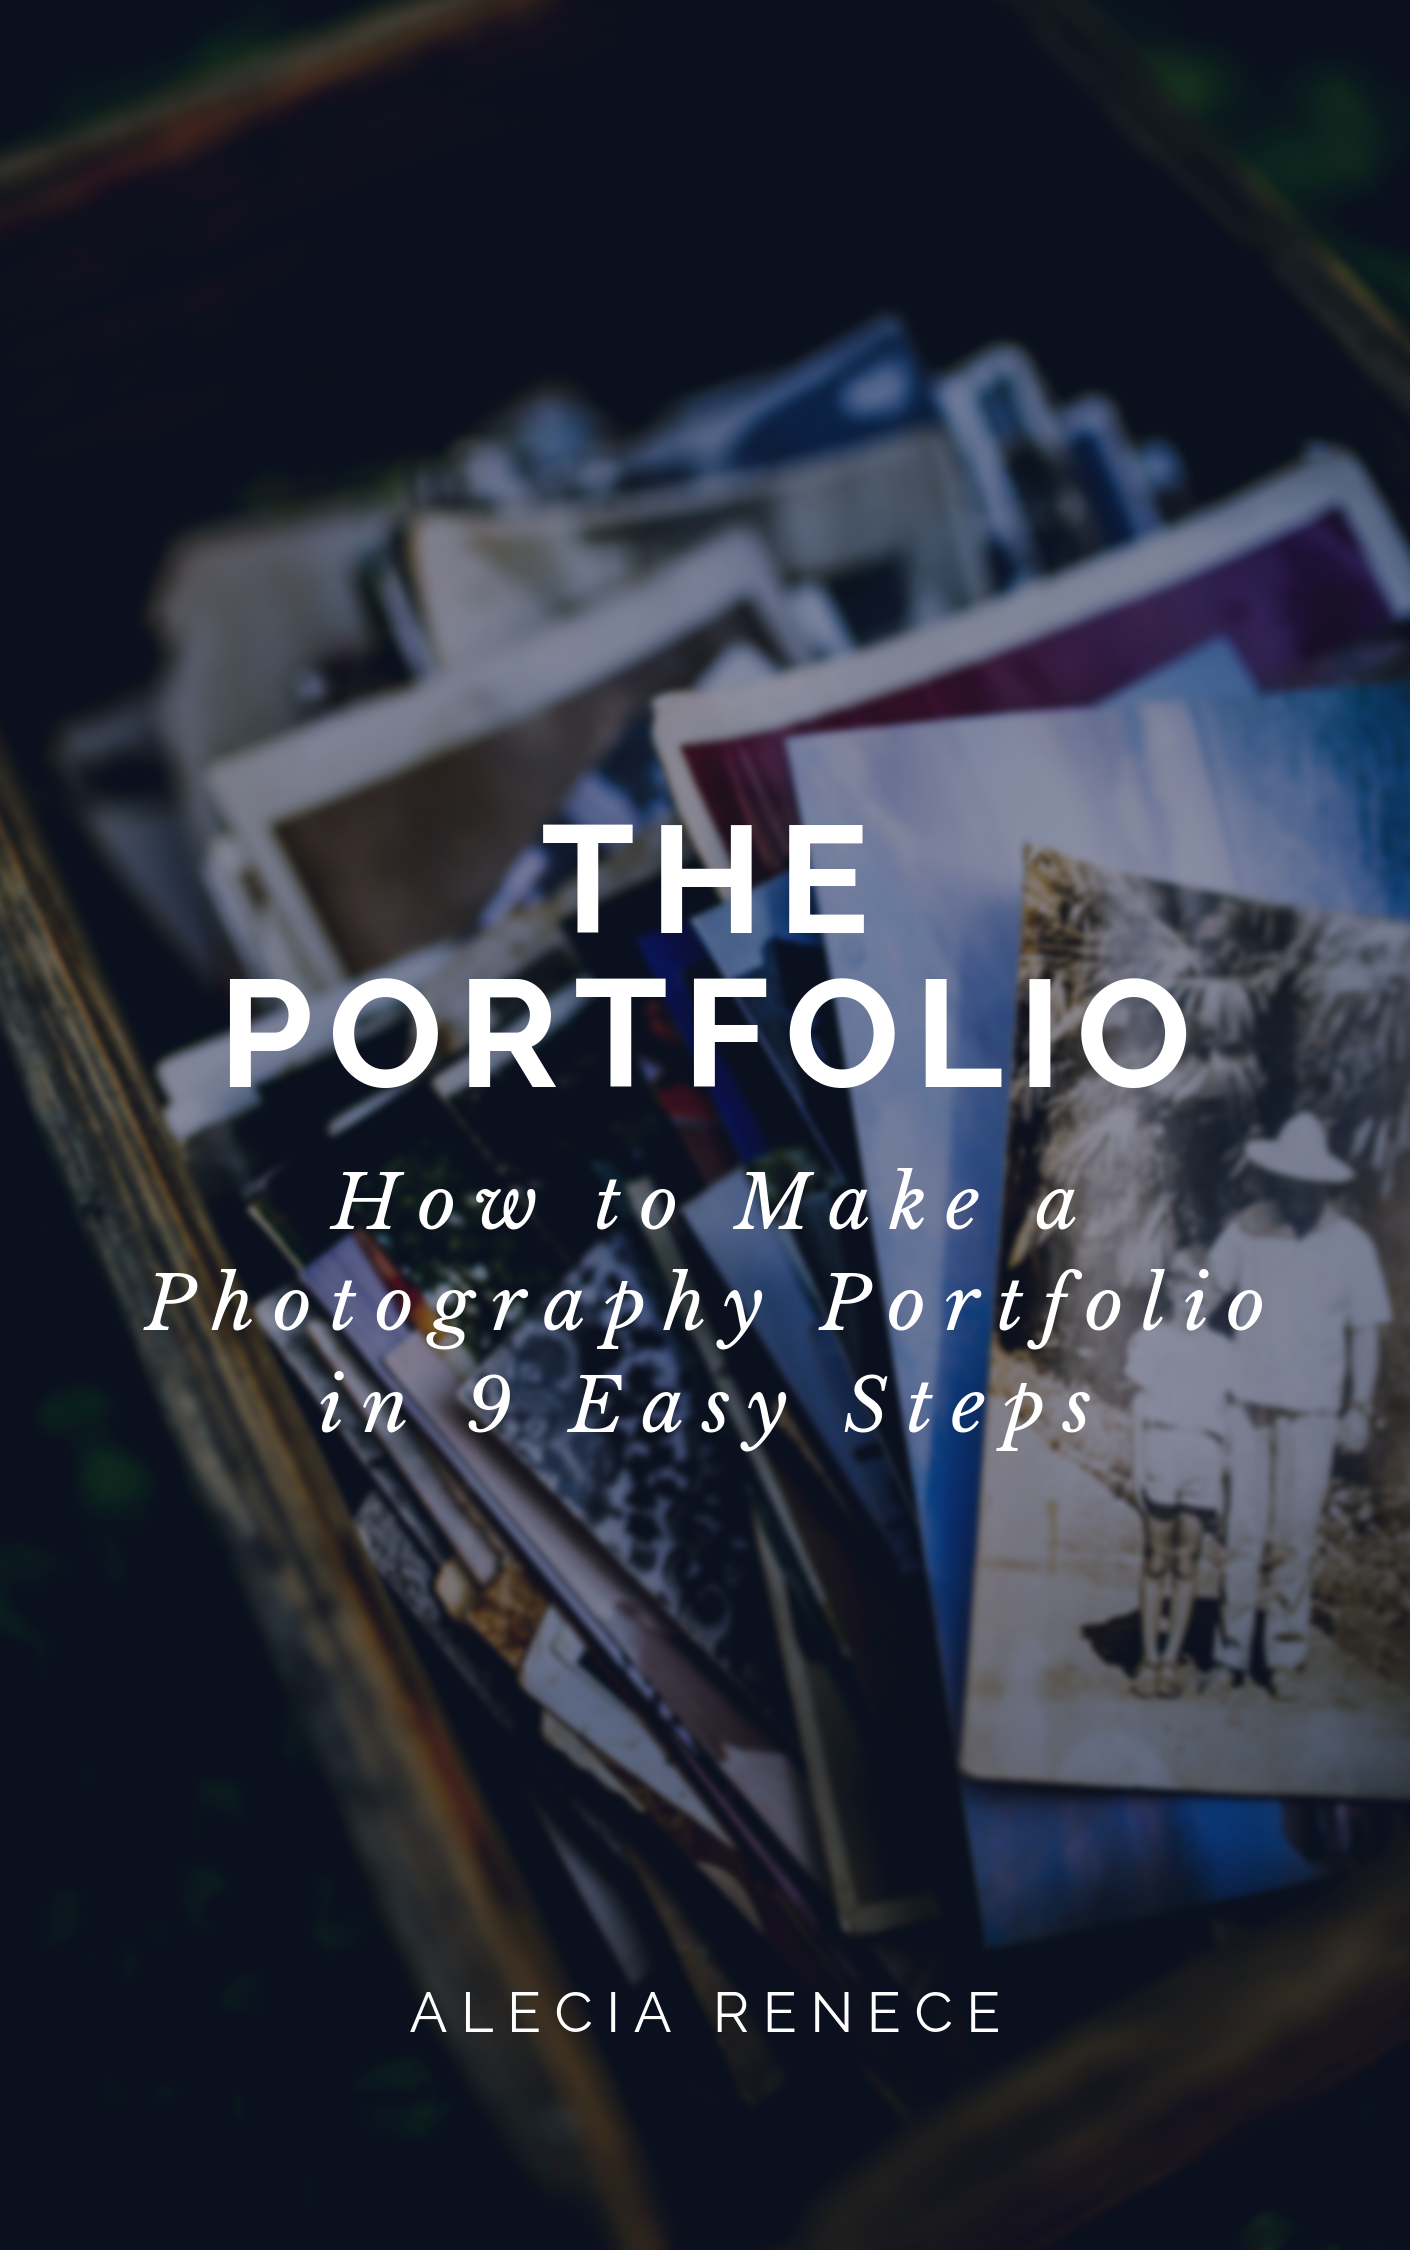 How To Build a Photography Portfolio in 9 Easy Steps